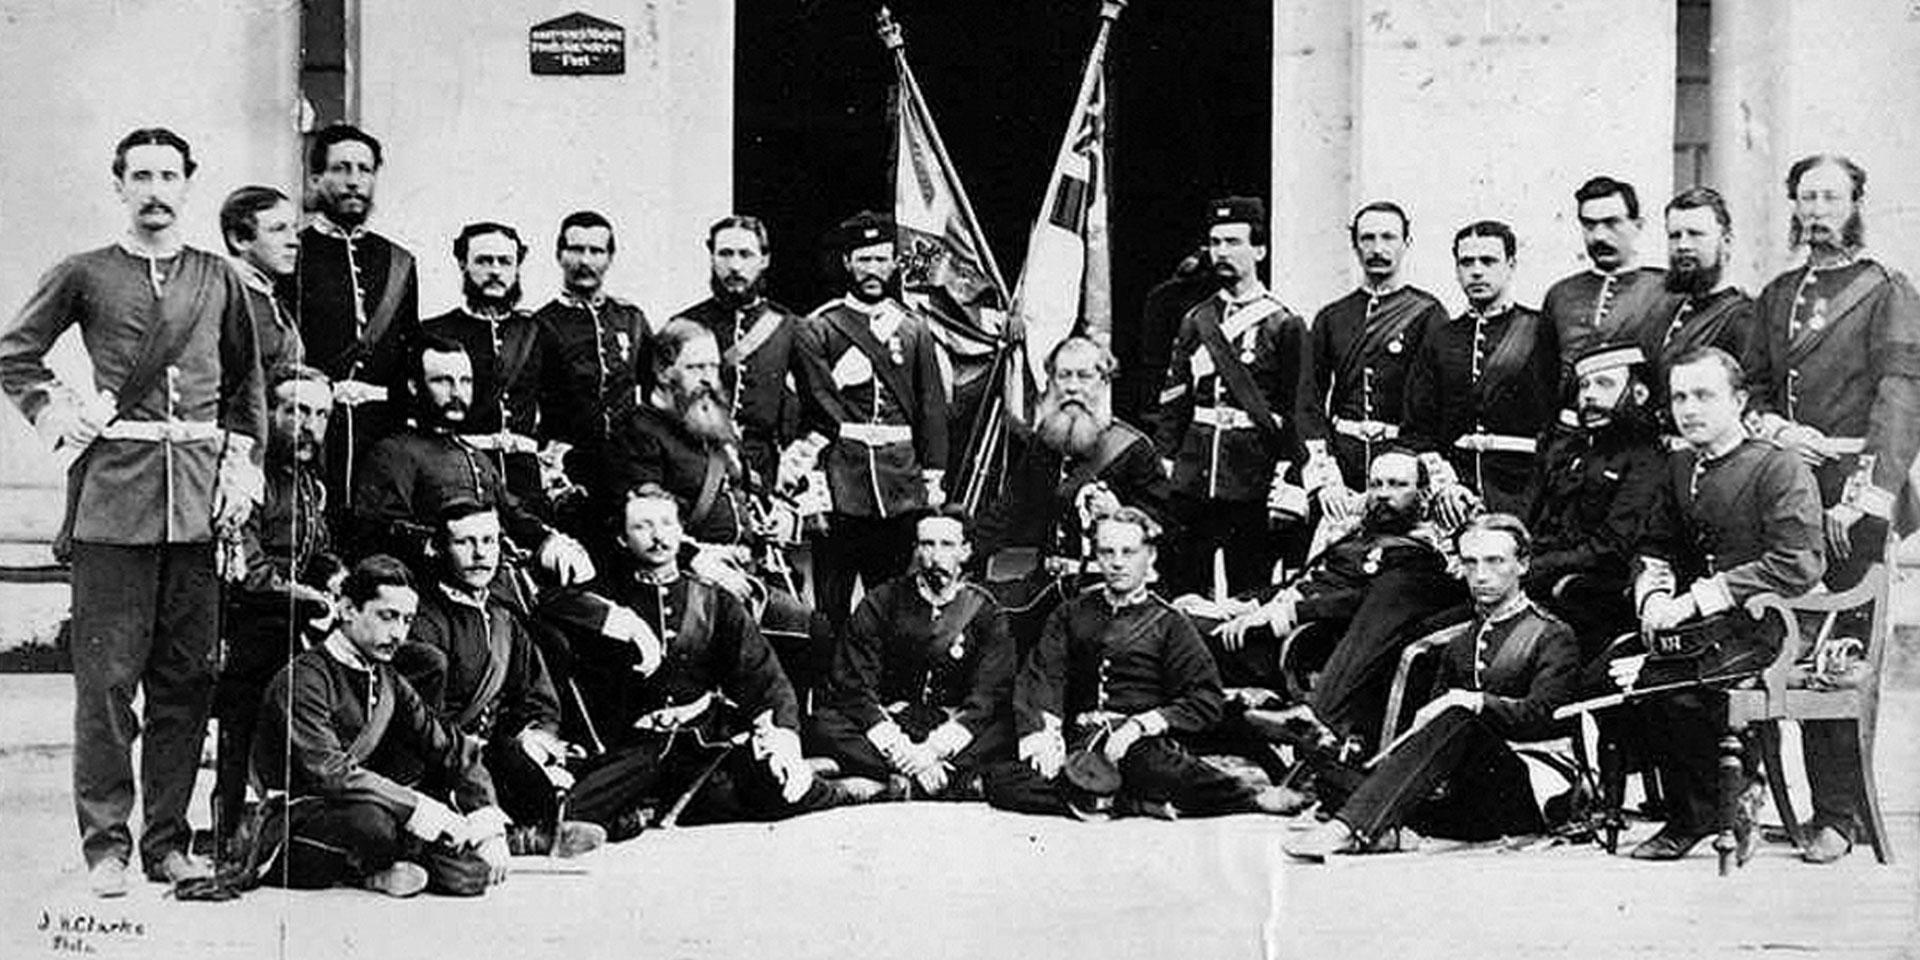 Members of the 107th Regiment of Foot (Bengal Infantry) at Allahabad, 1865